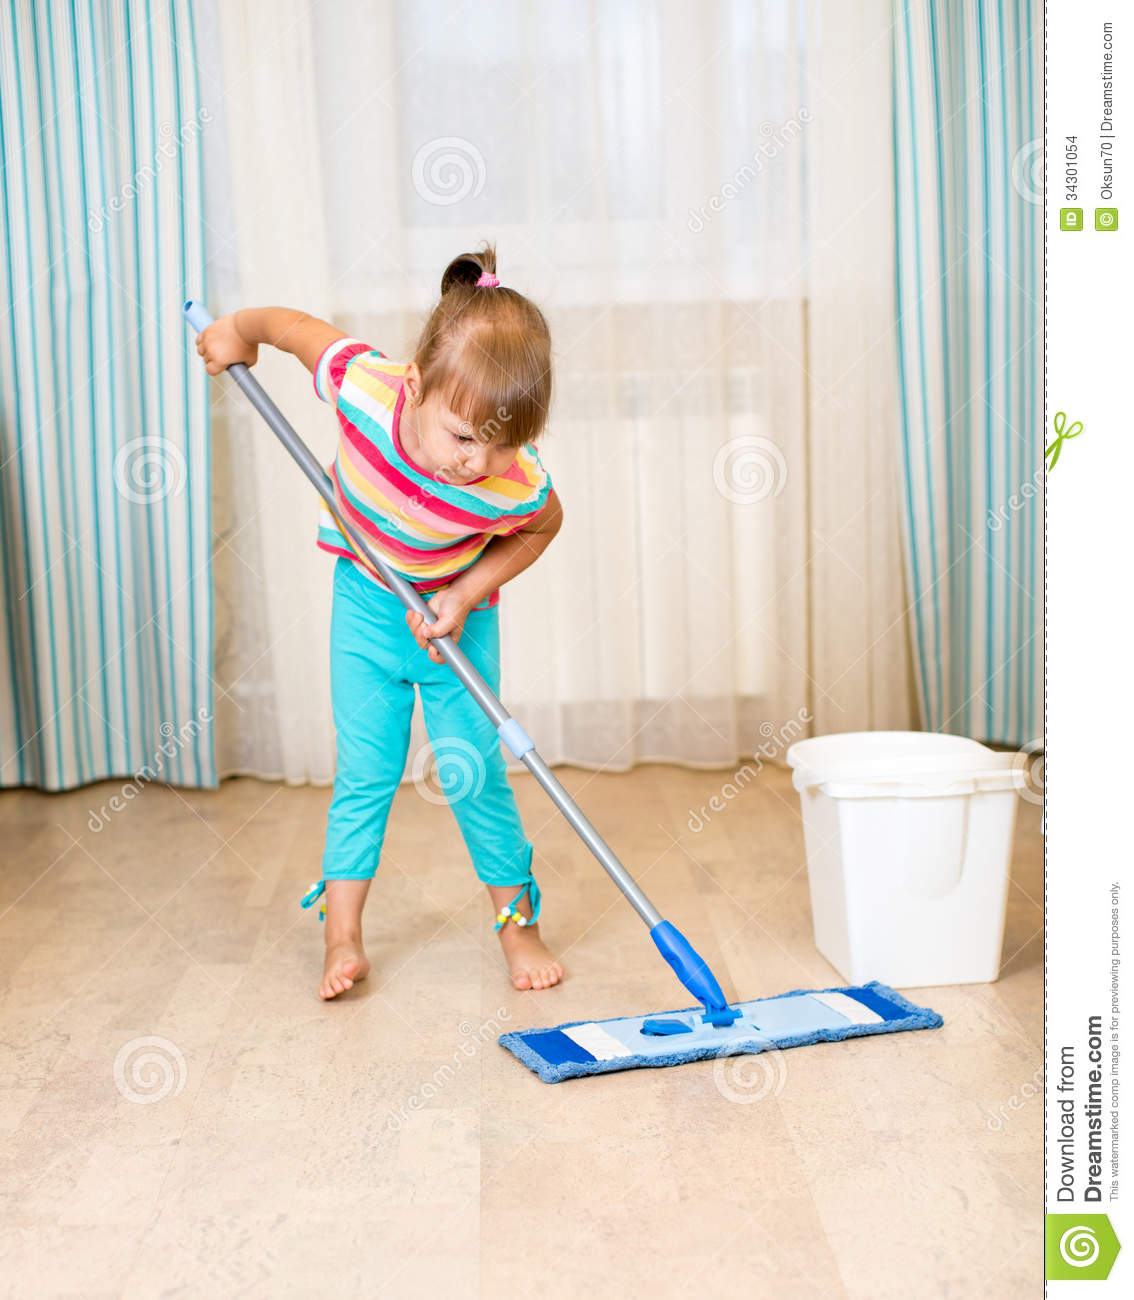 Kid Girl With Mop Stock Images - Image: 34301054